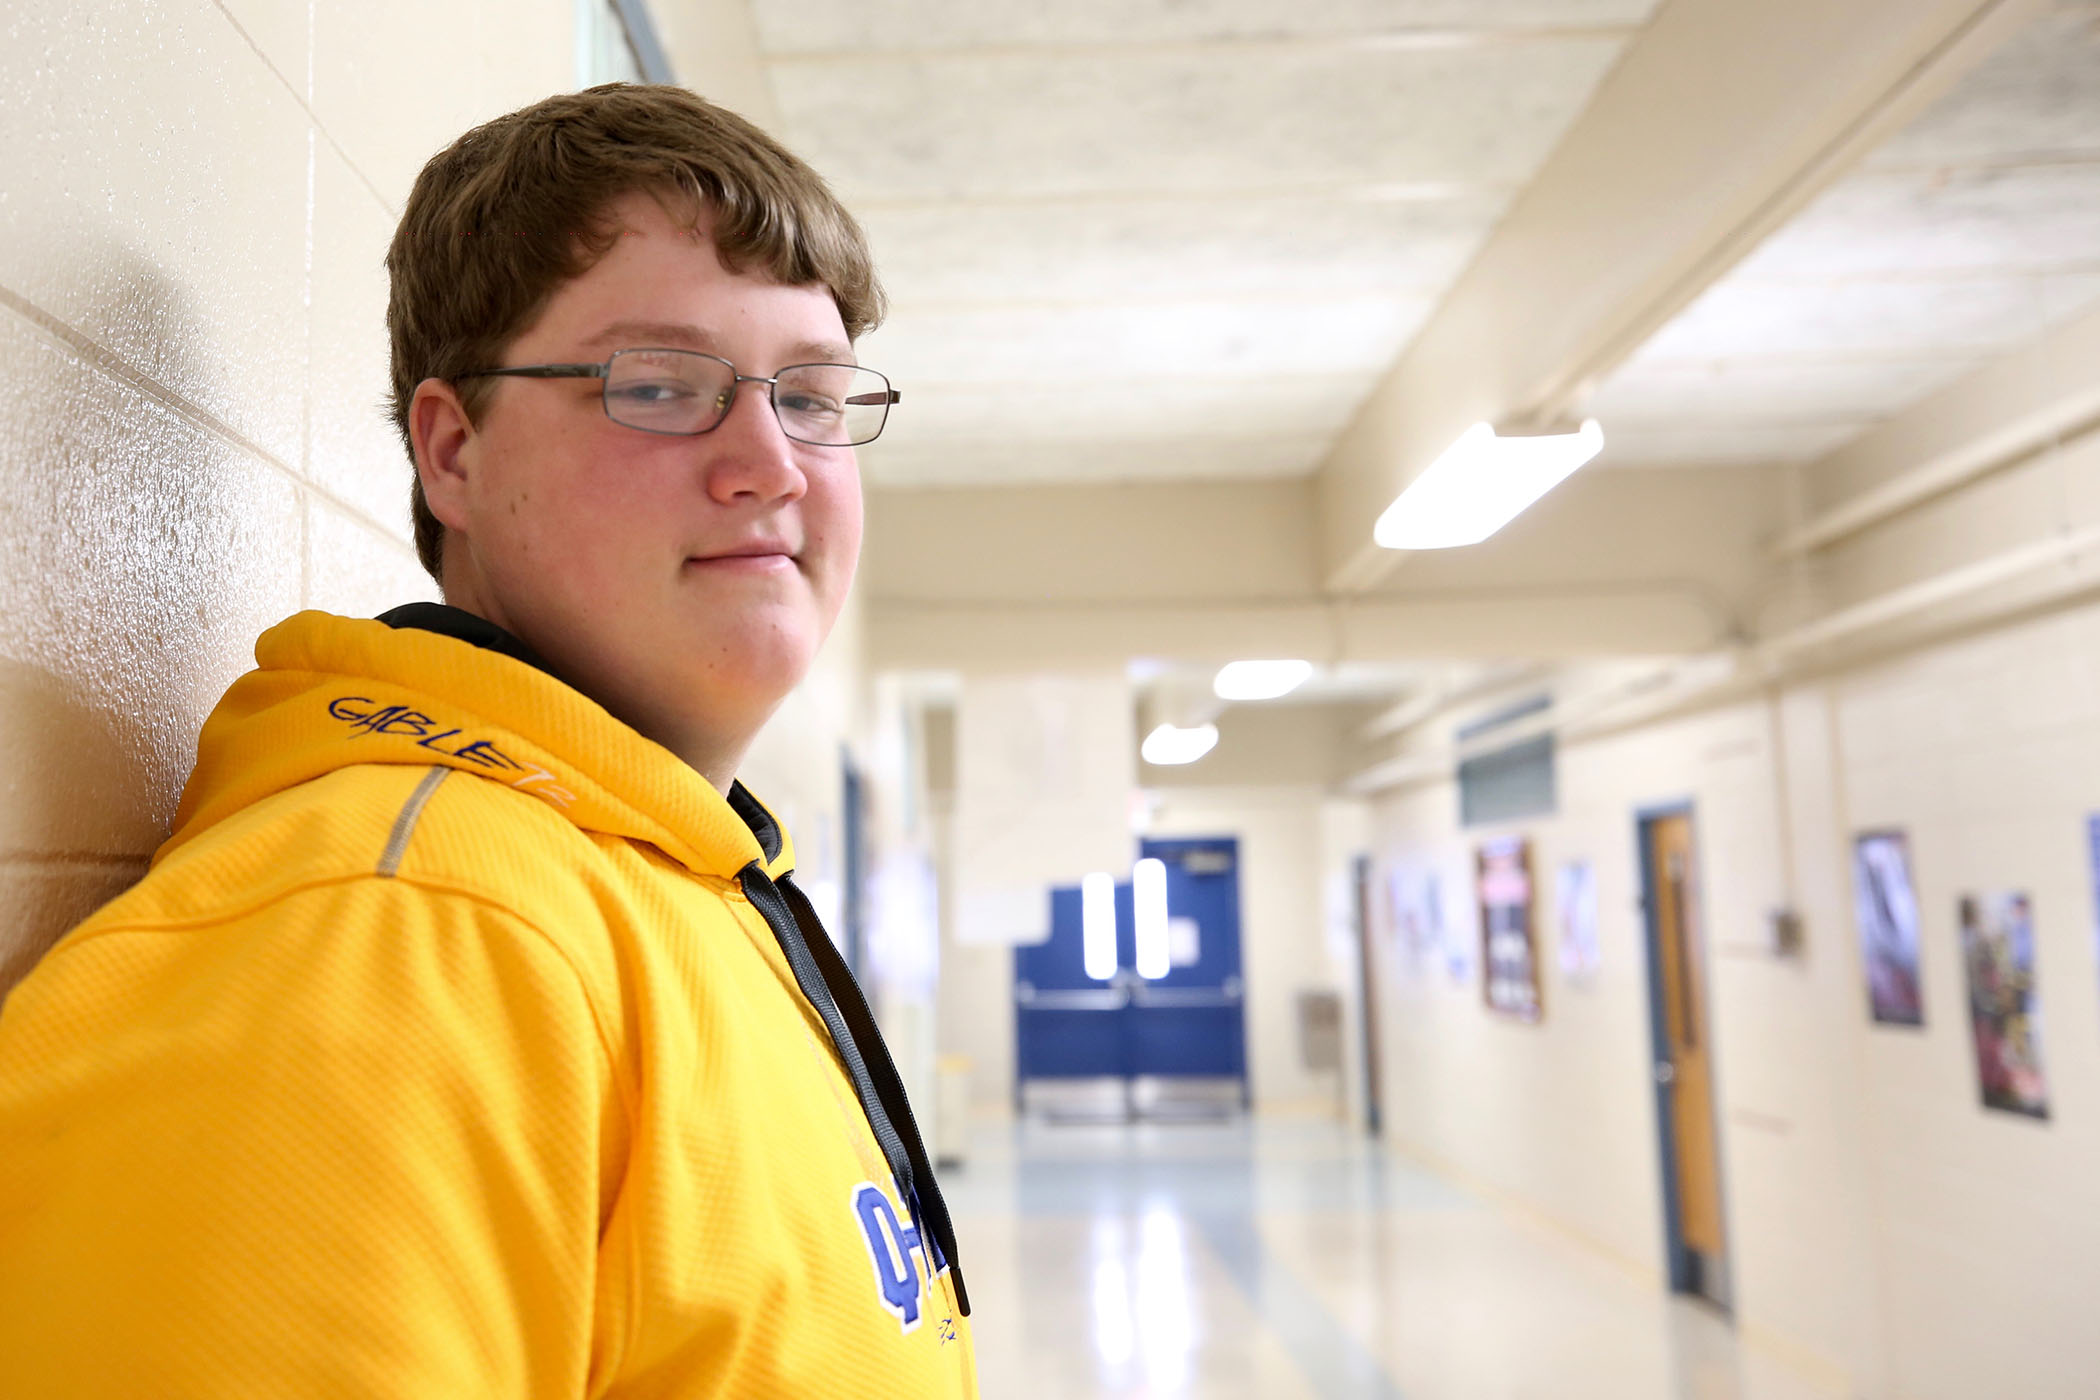 Clayton poses for a photo in the hallway of the Career Tech Center.